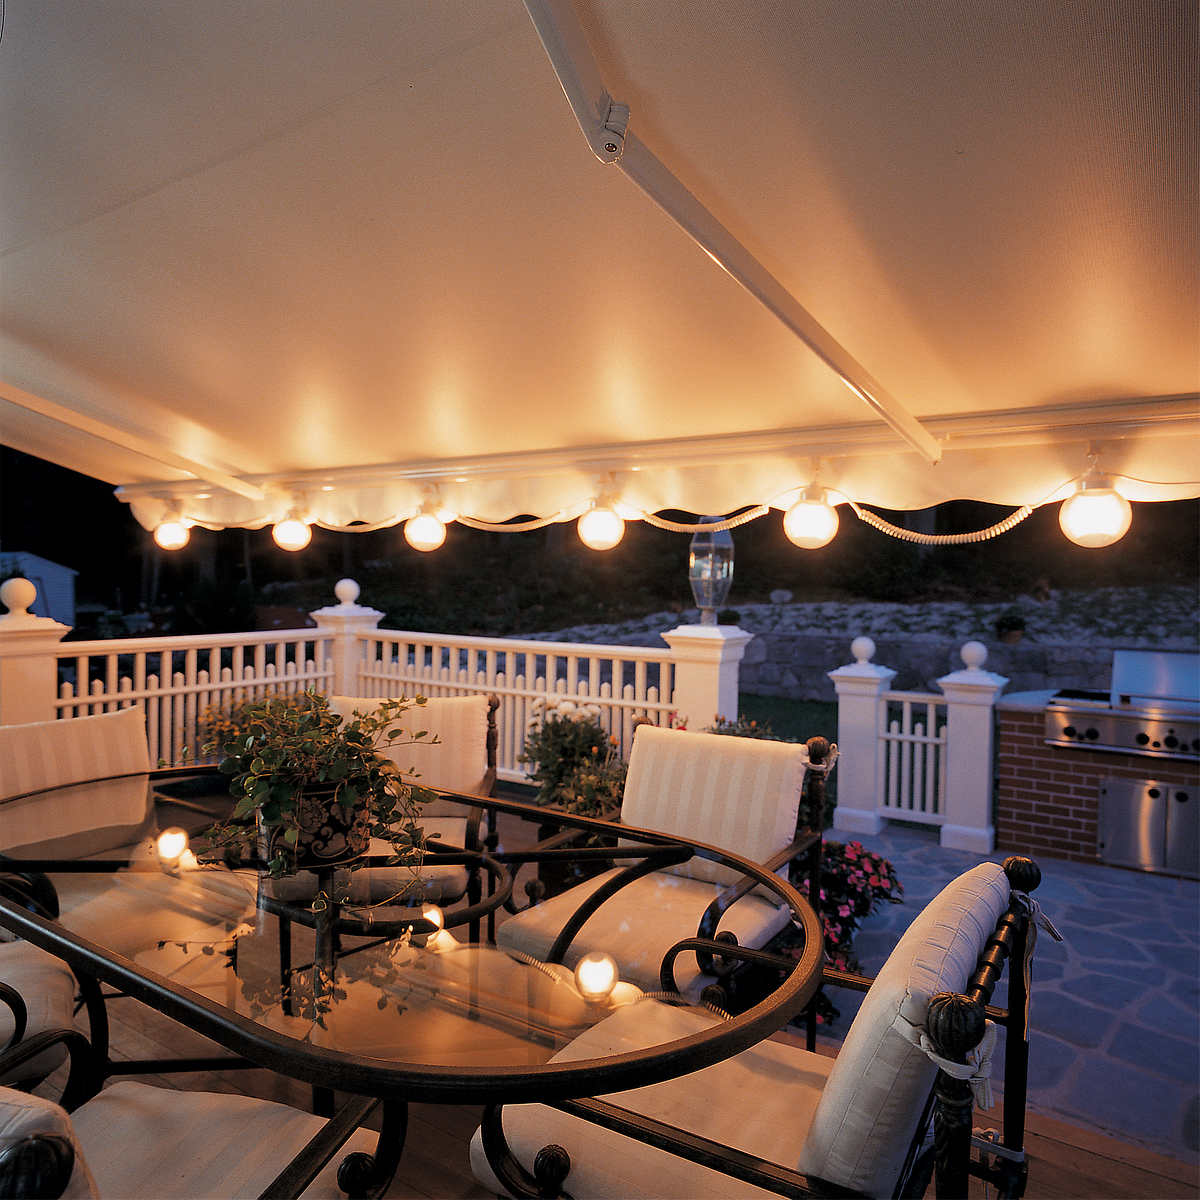 Outdoor lighting - Sunsetter Patio Awning Lights